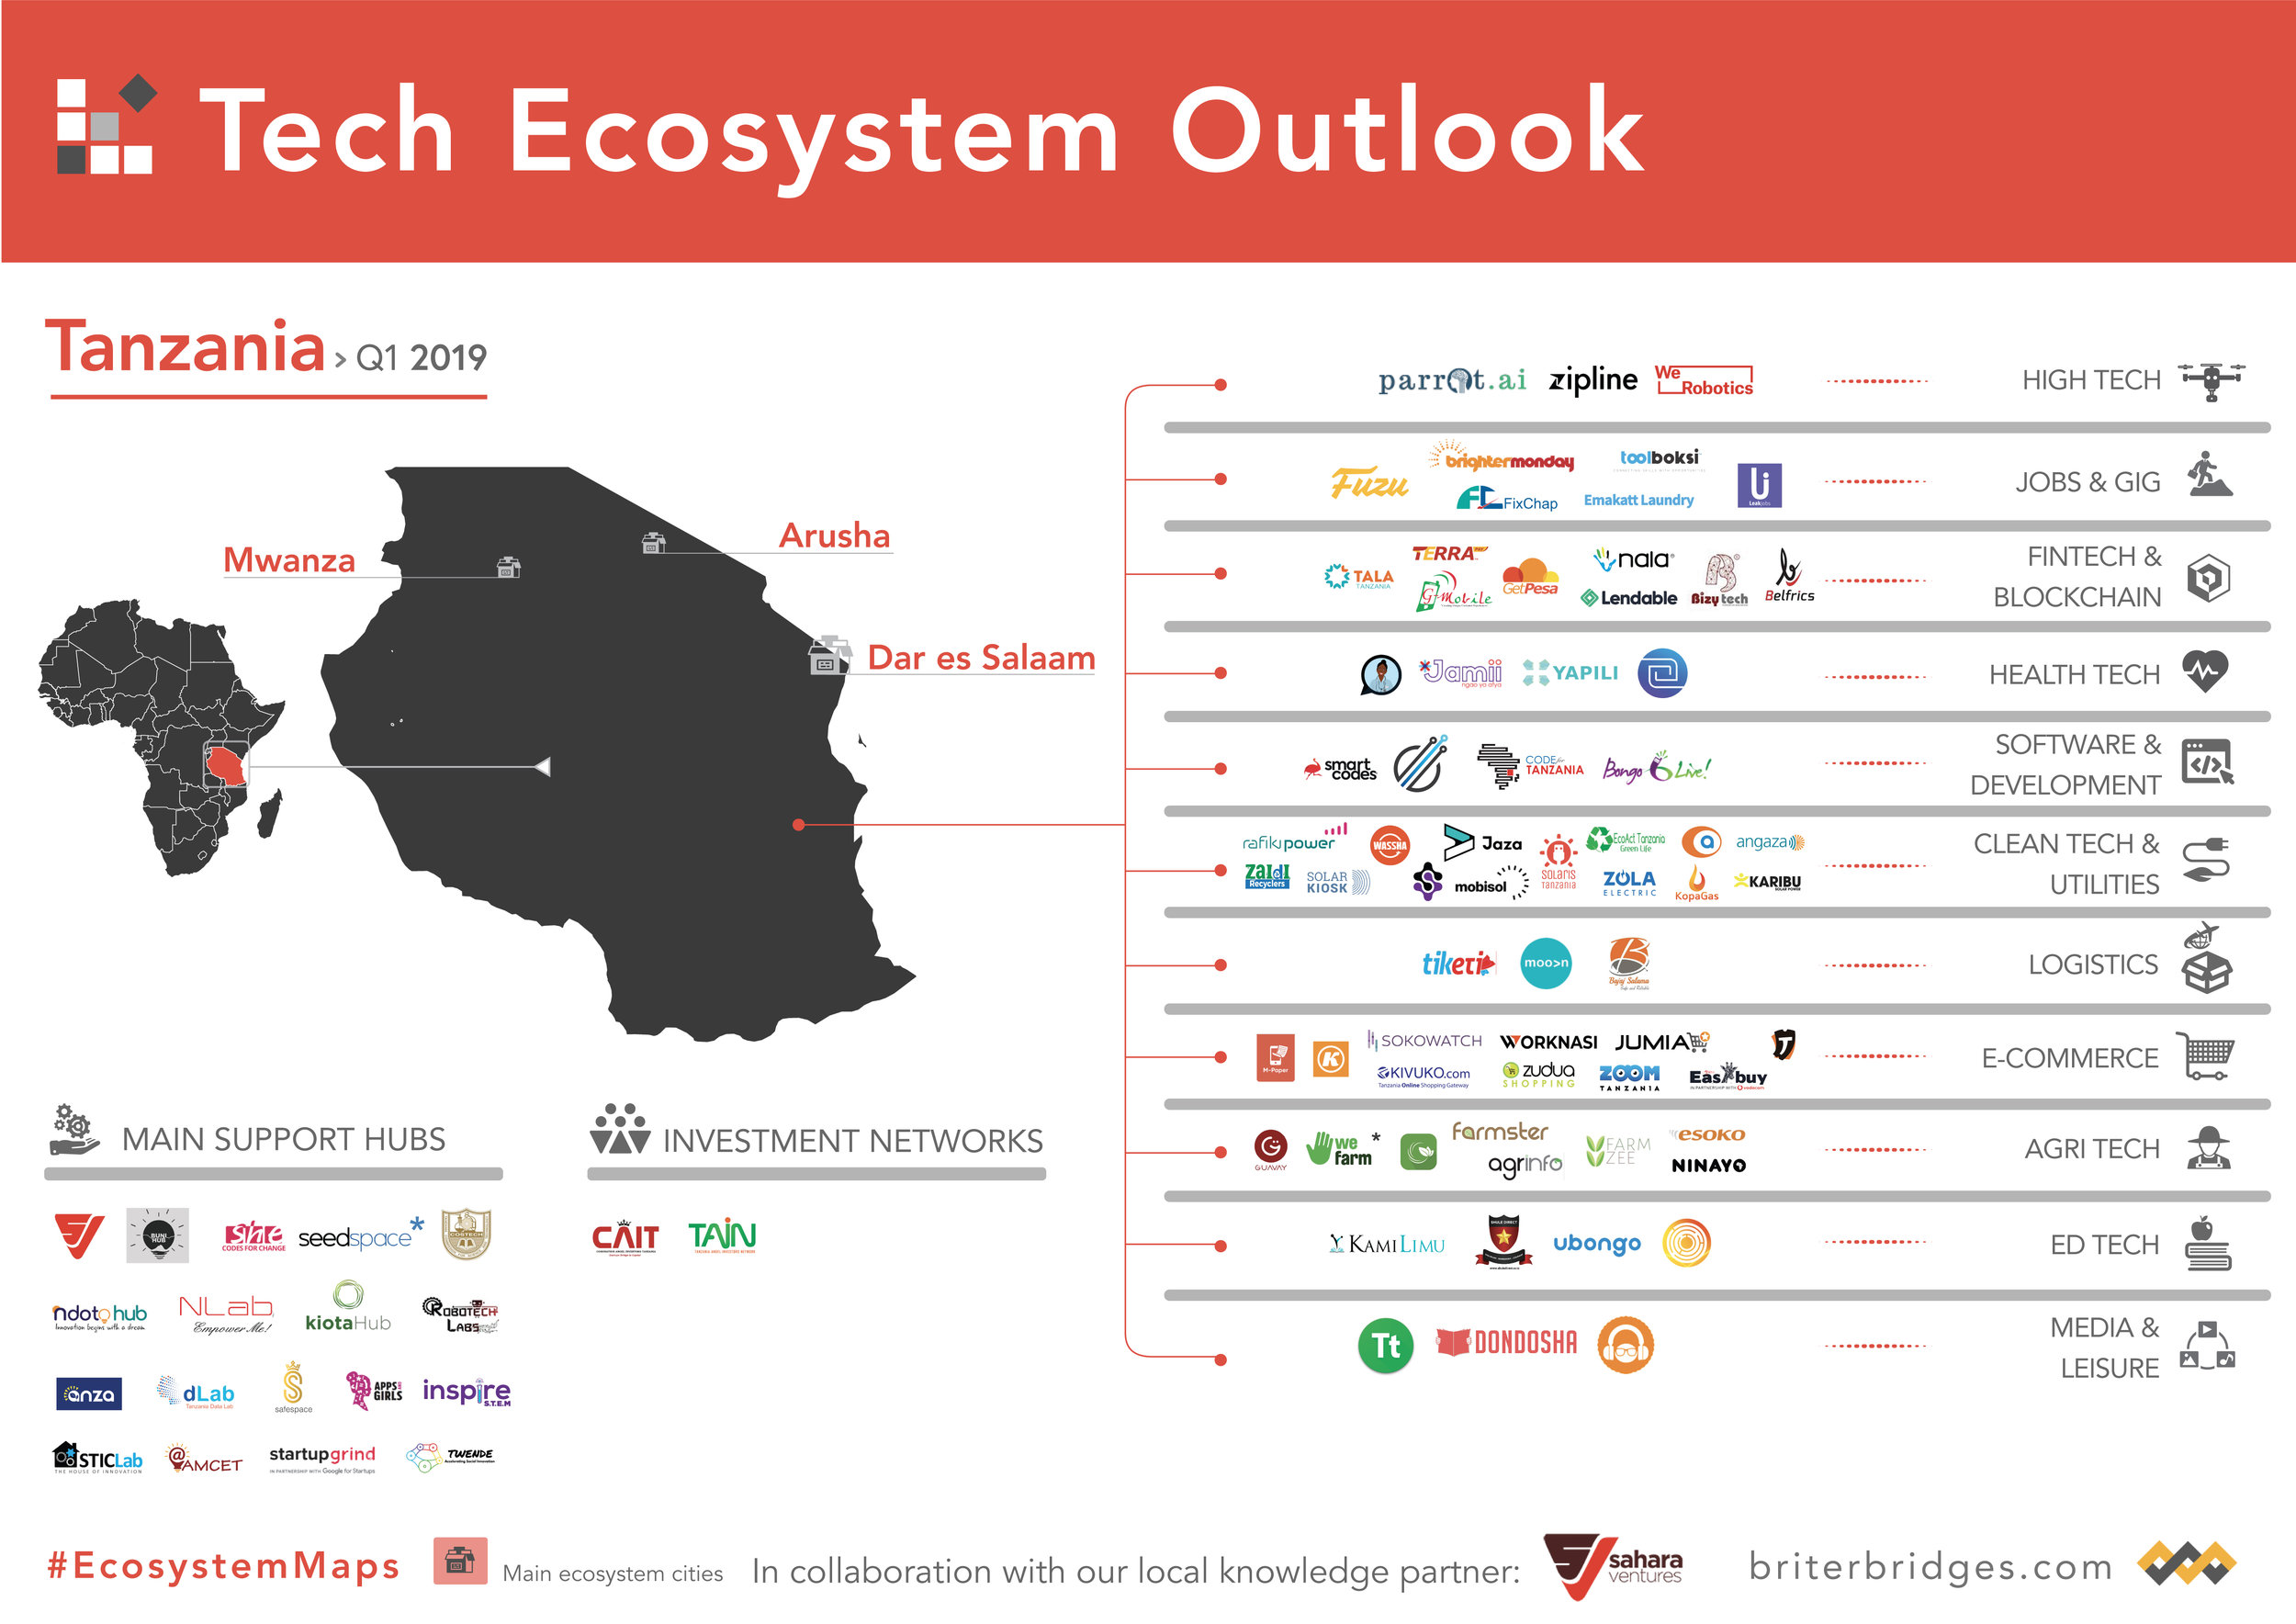 Tanzania's Tech Ecosystem Map